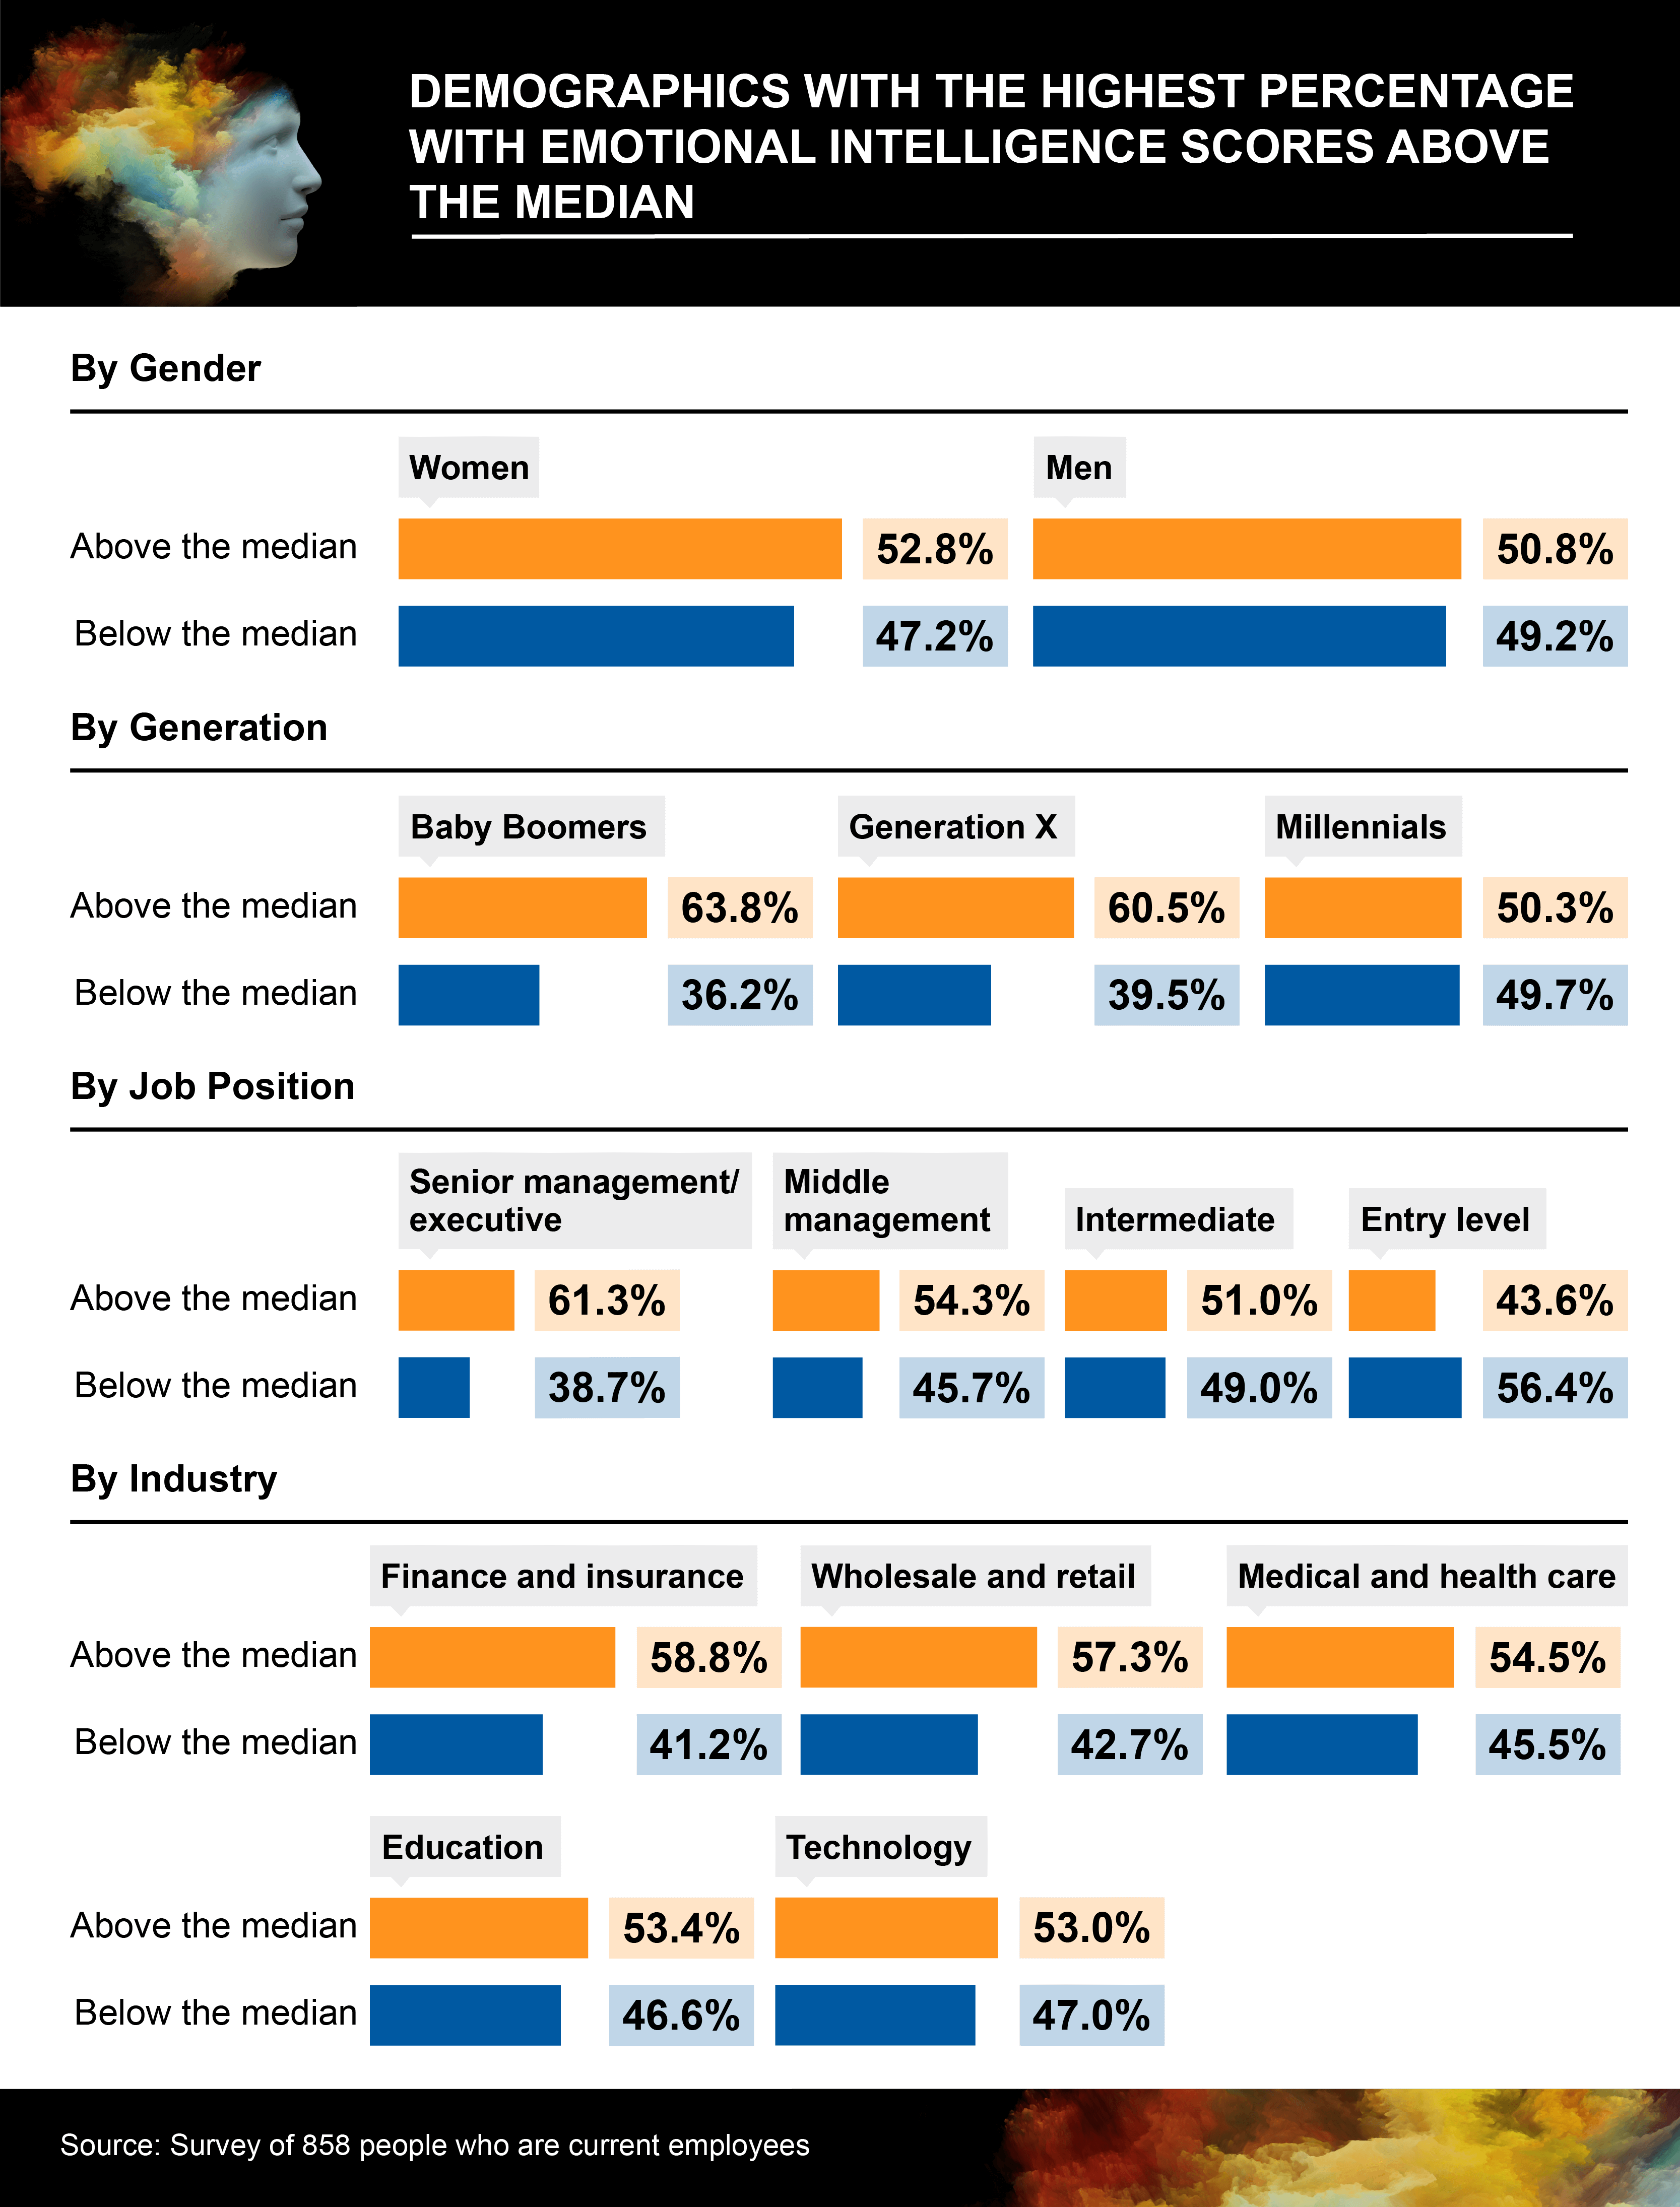 Infographic showing demographics with the highest percentage with emotional intelligence scores above the median